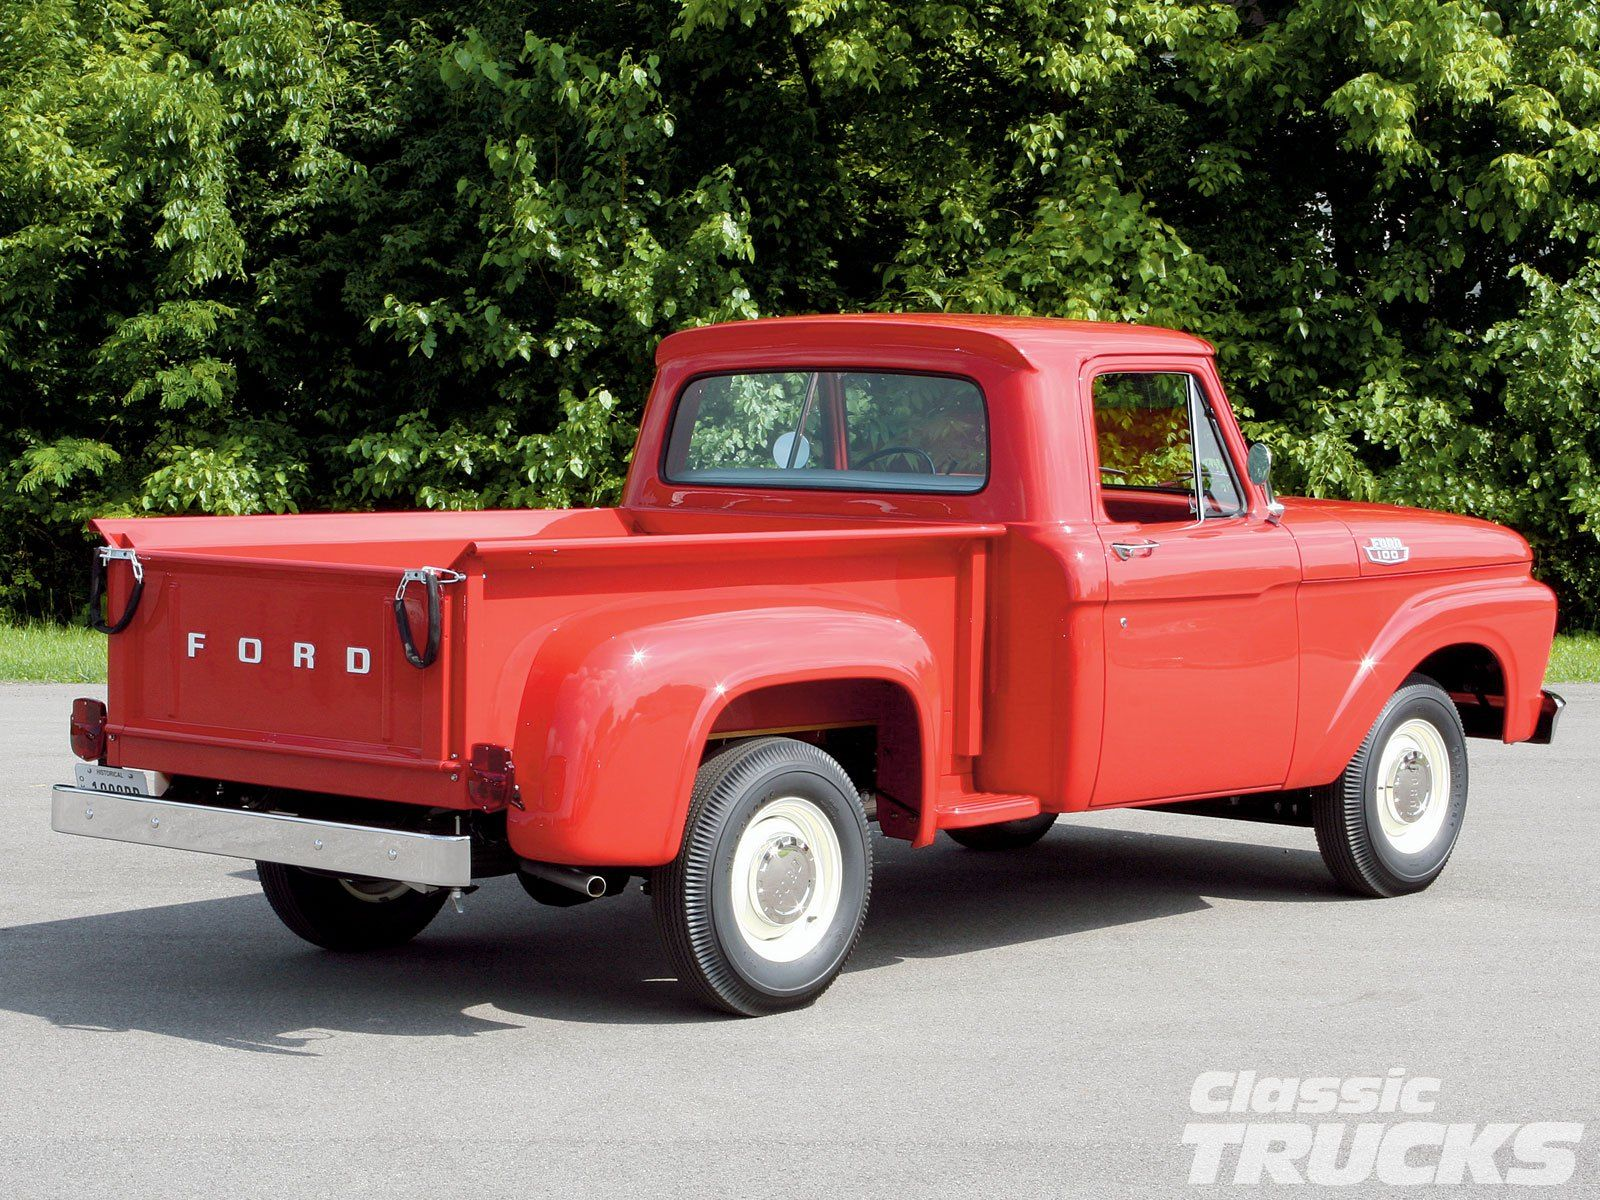 Ford F100 Design And Specifications Amazing Pictures Video To Ford F100 Design And Specifica Classic Ford Trucks Classic Pickup Trucks Vintage Pickup Trucks